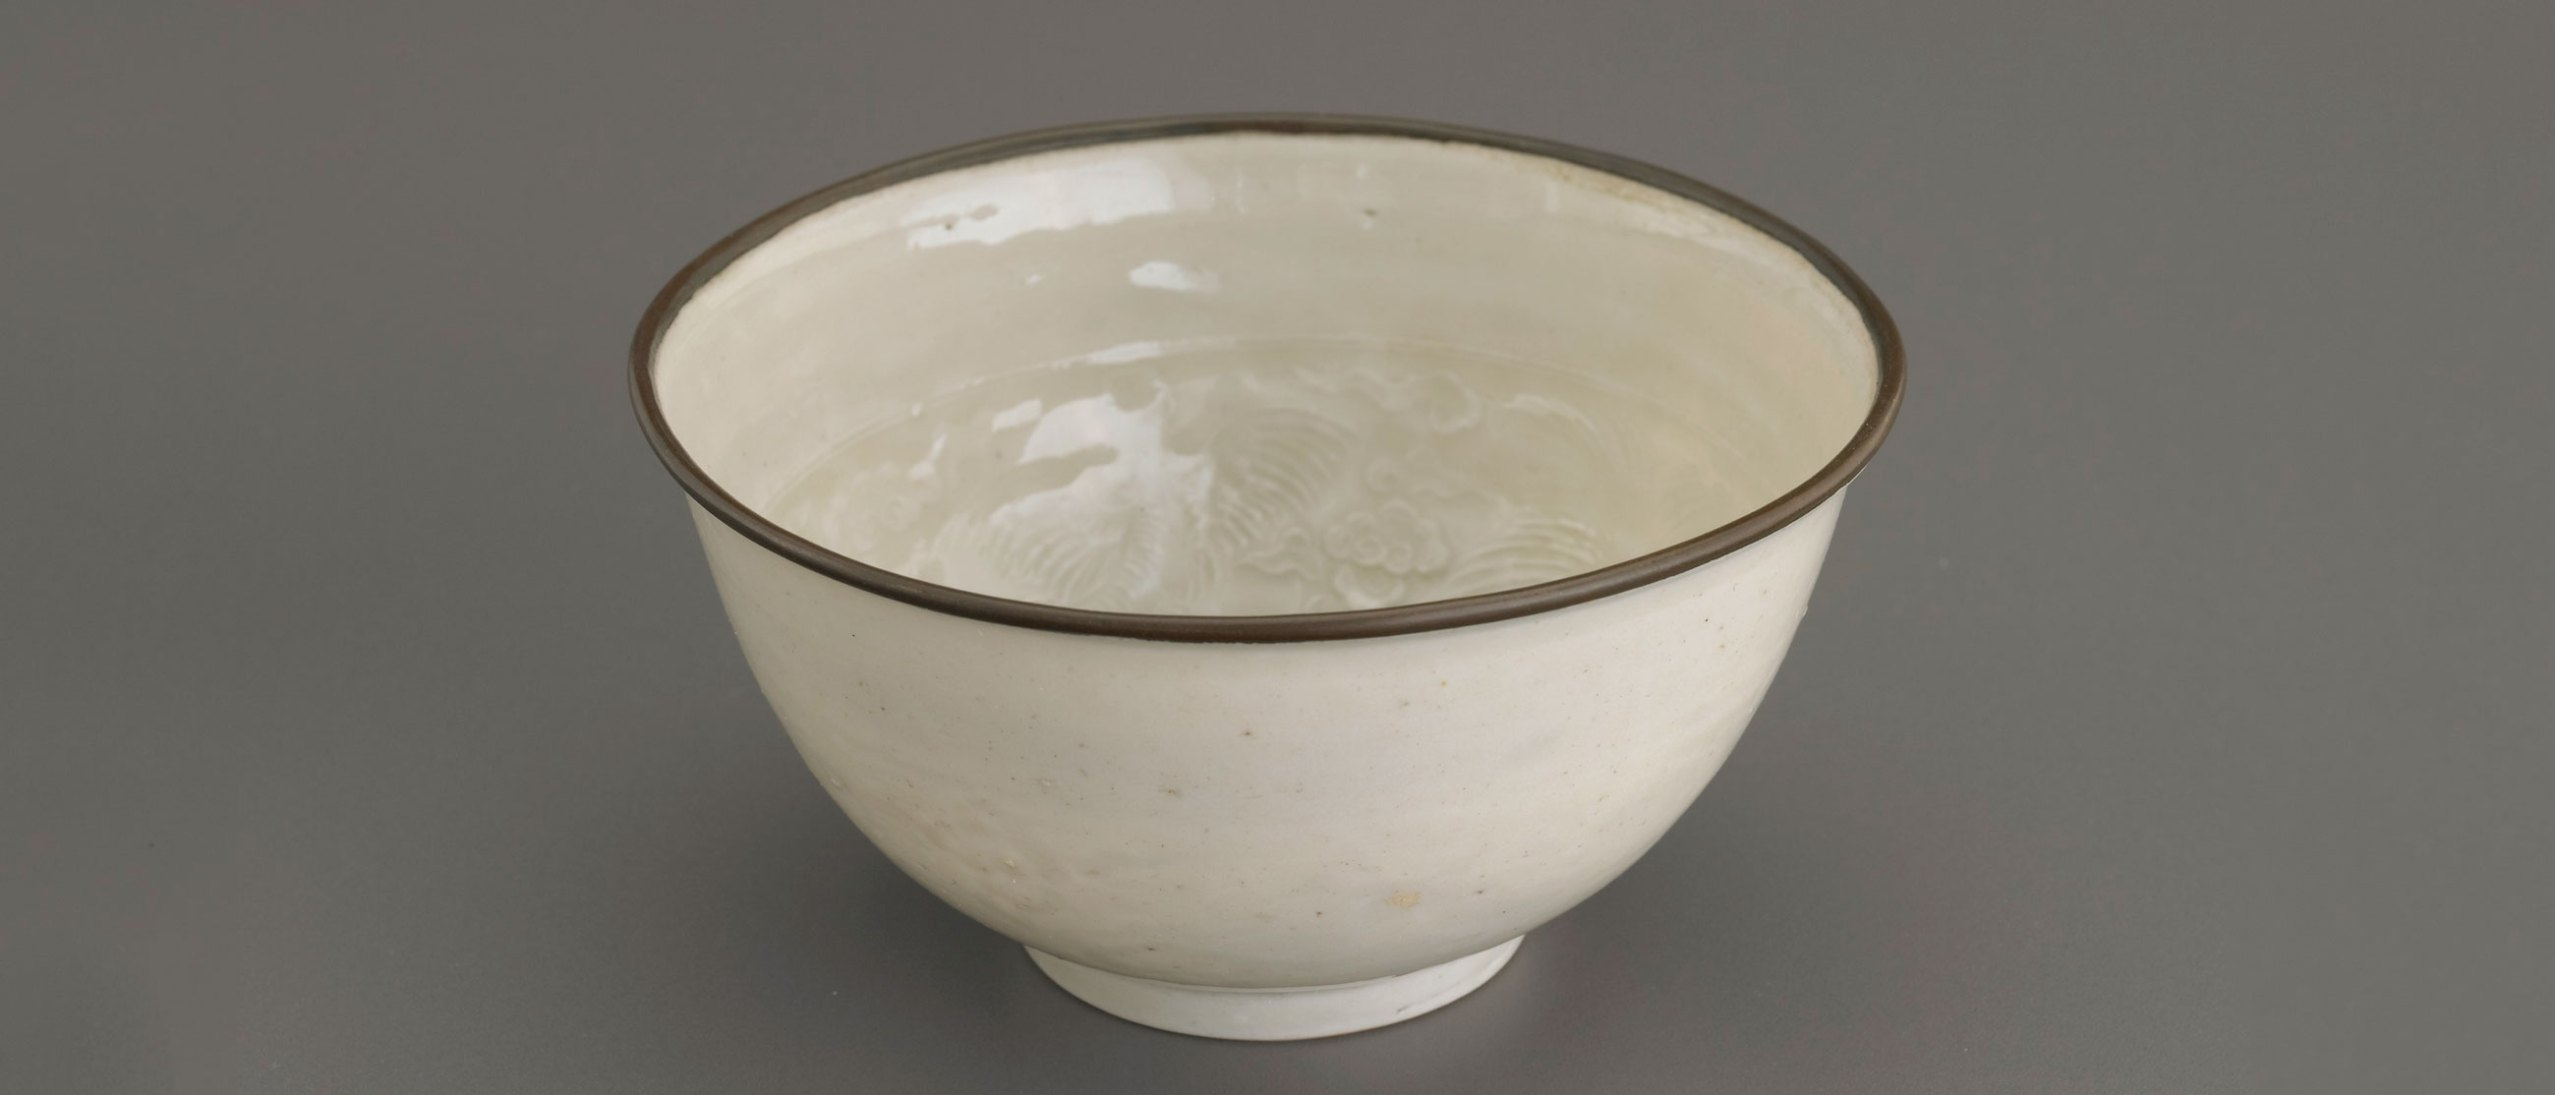 A white bowl with a molded brown decoration